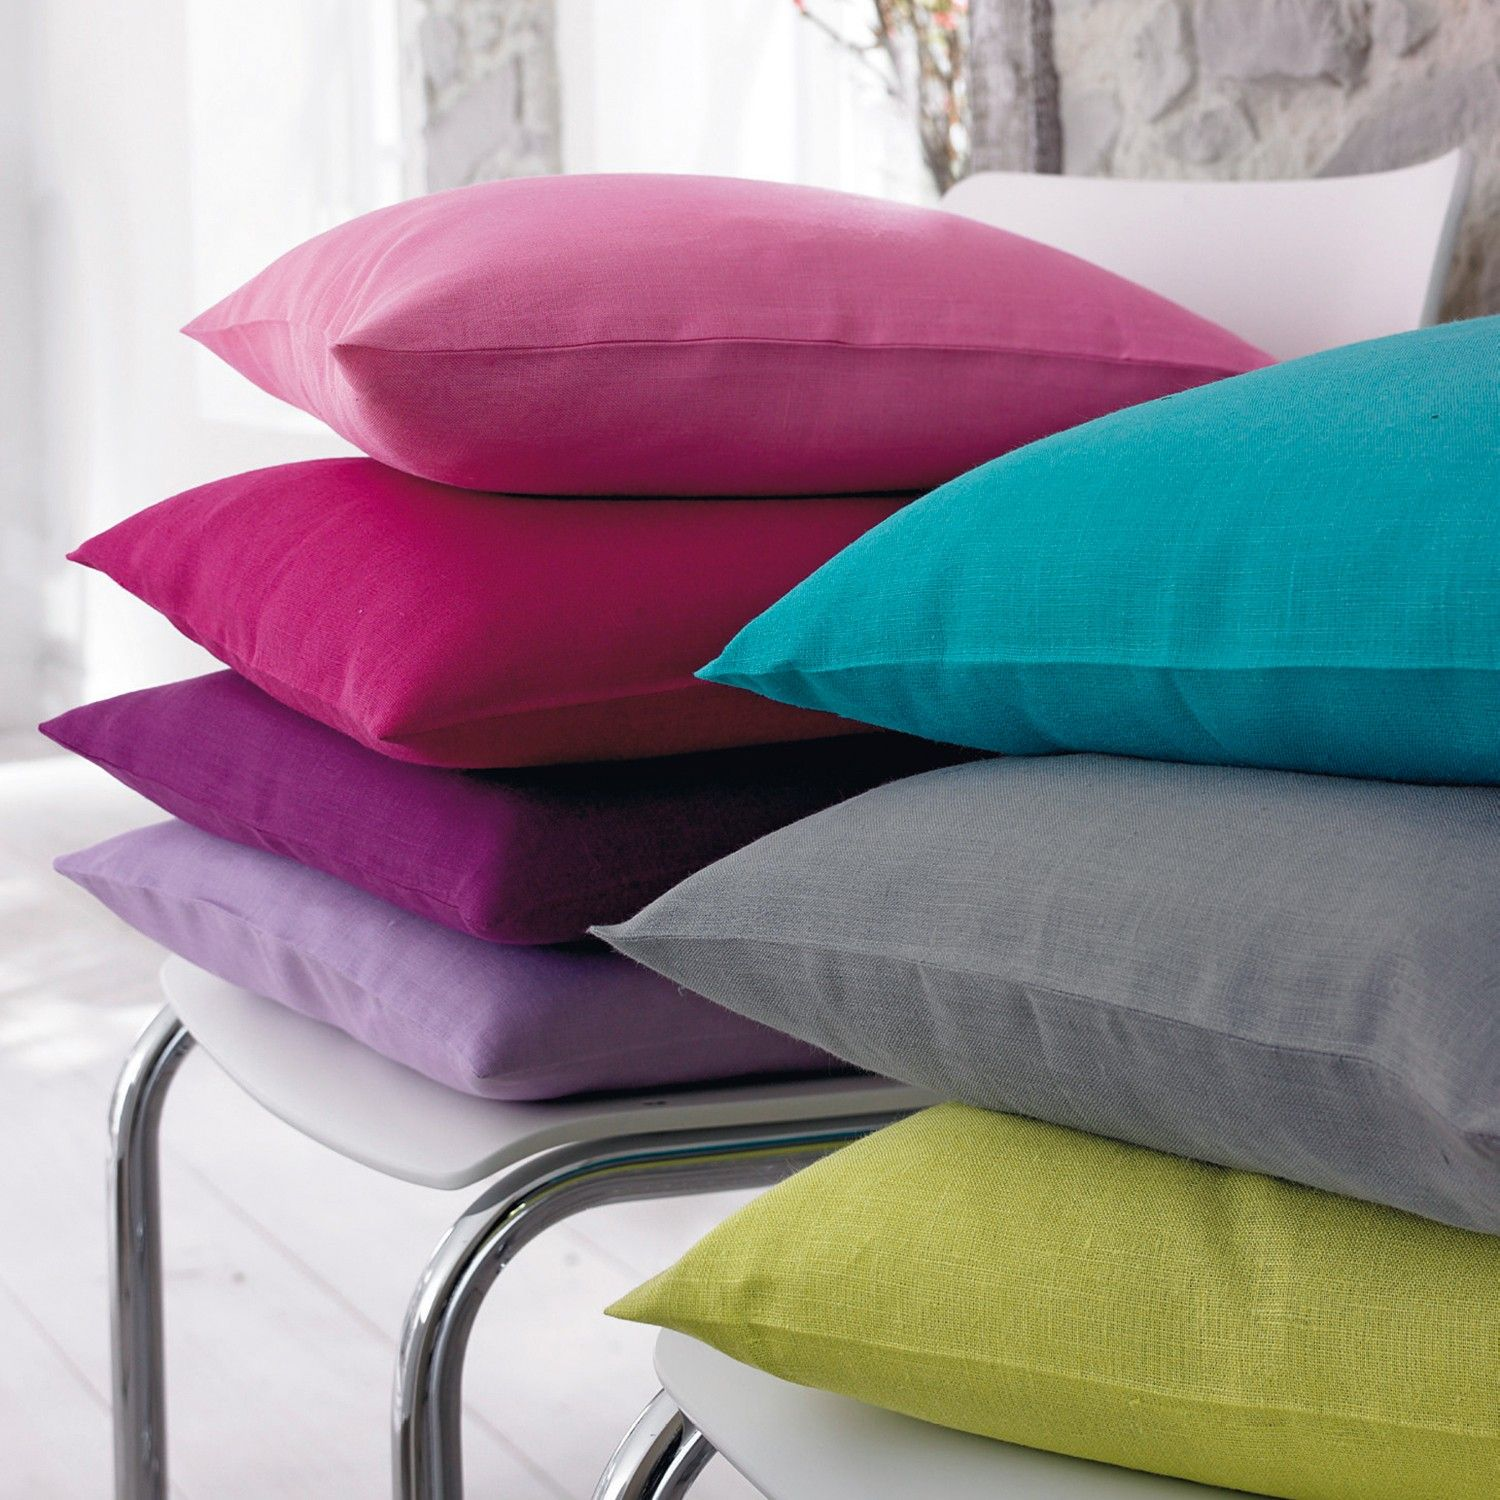 Important Consideration for #Cushion Covers Online #cushion_covers  #Cushion_Covers_Online #CushionsOnline Shop Now: https://homedecoraccessoriesblog.wordpress.com/2017/02/02/important-consideration-for-cushion-covers-online/